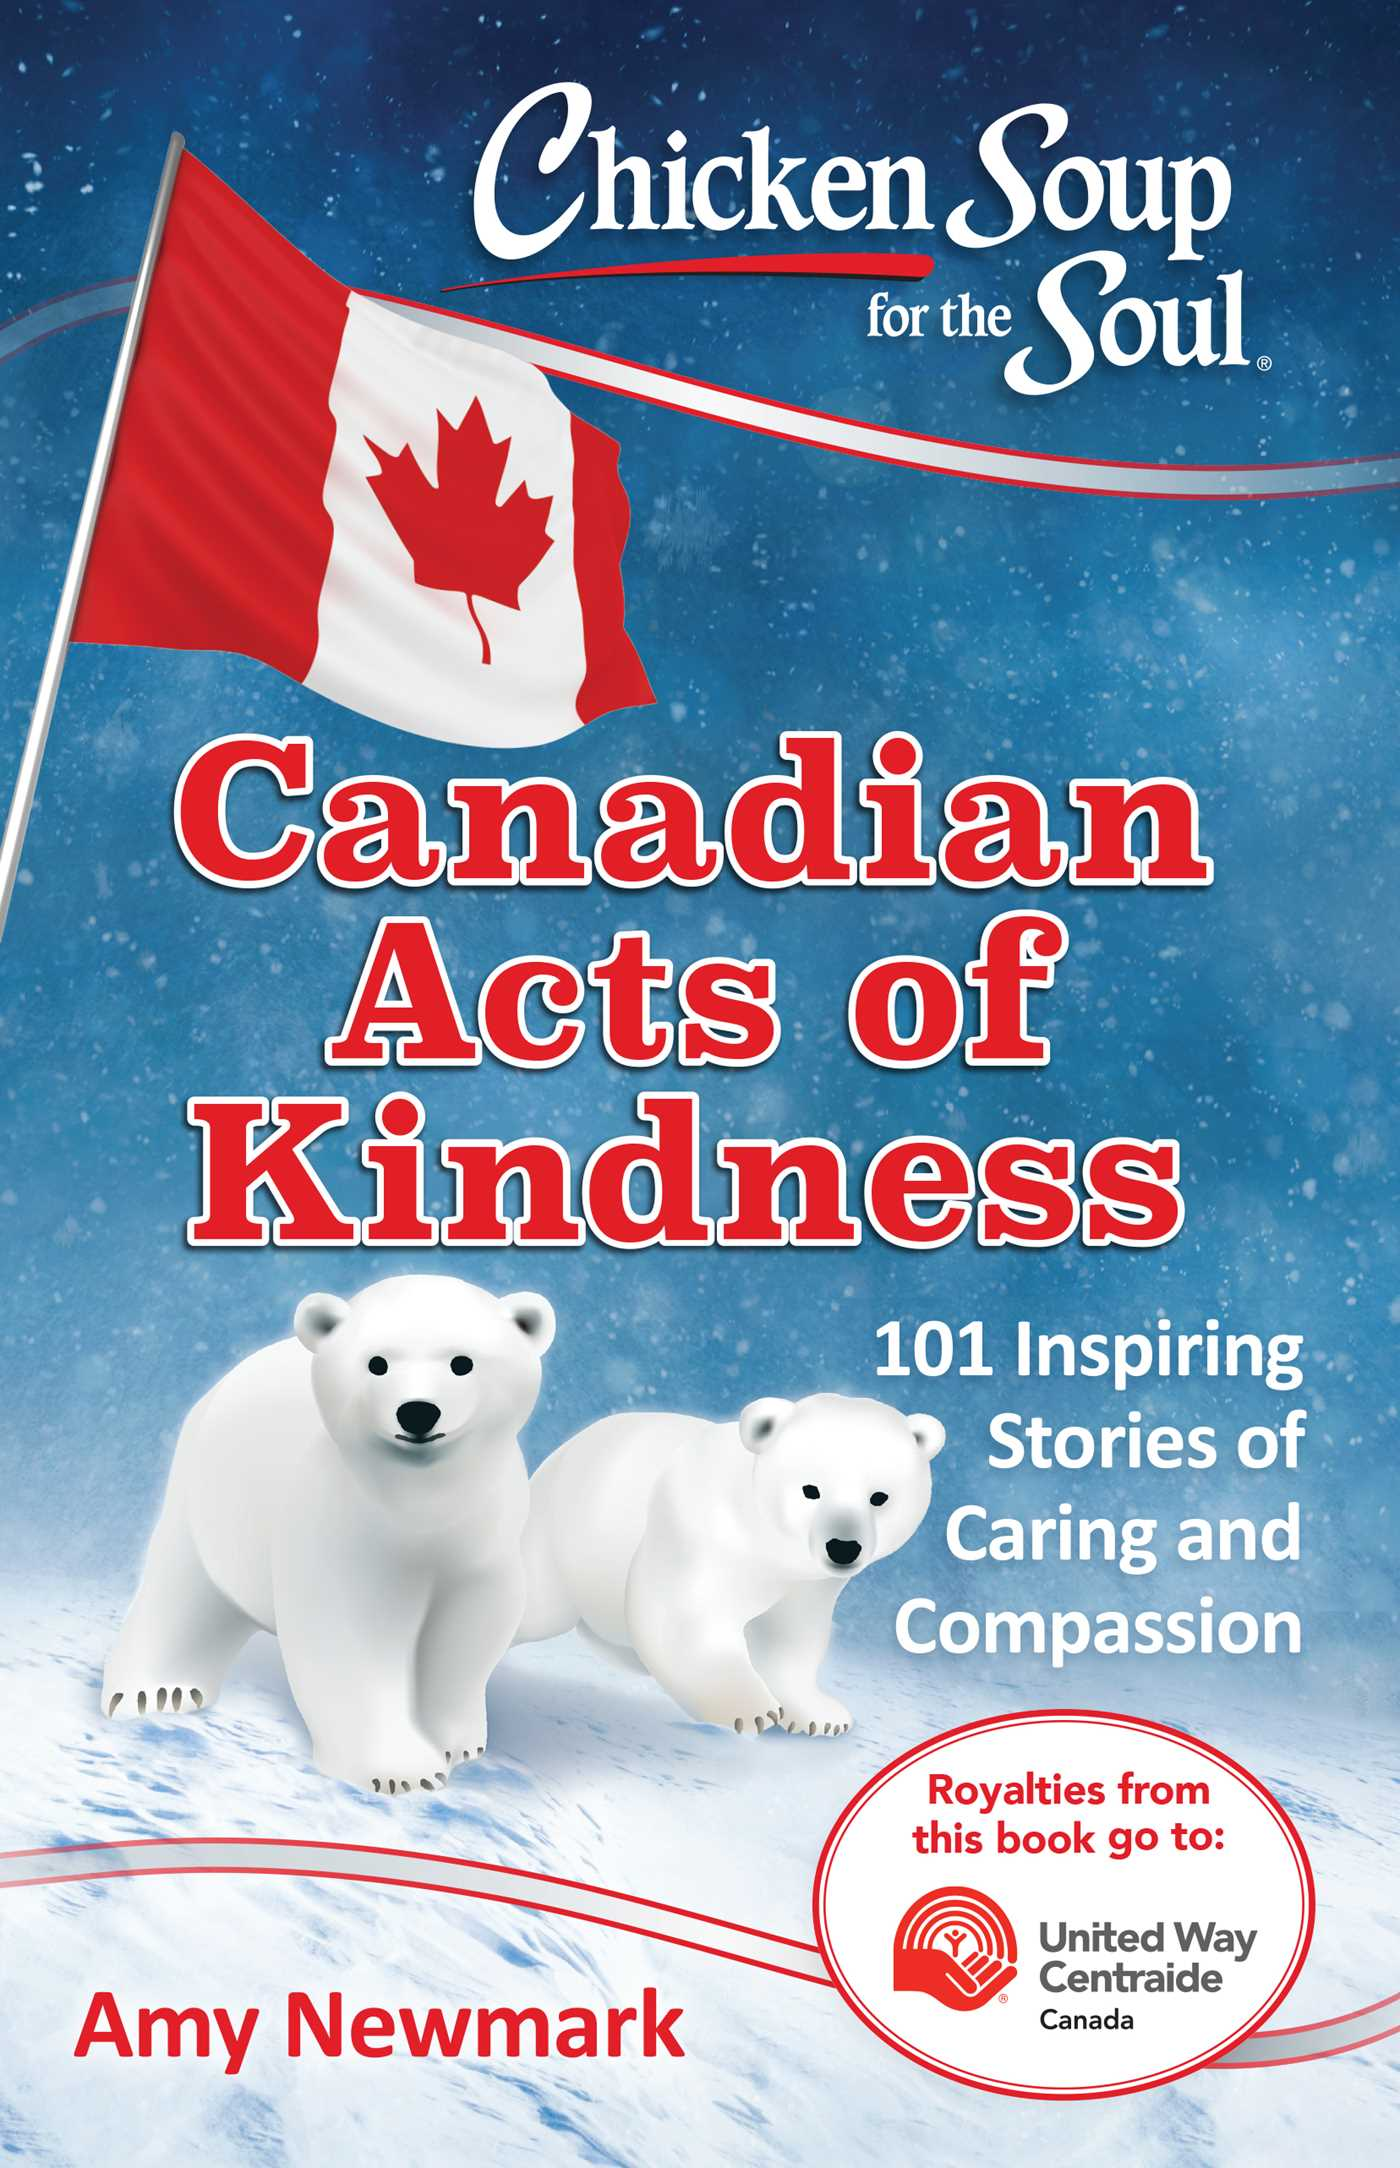 Chicken soup for the soul canadian acts of kindness 9781611599831 hr